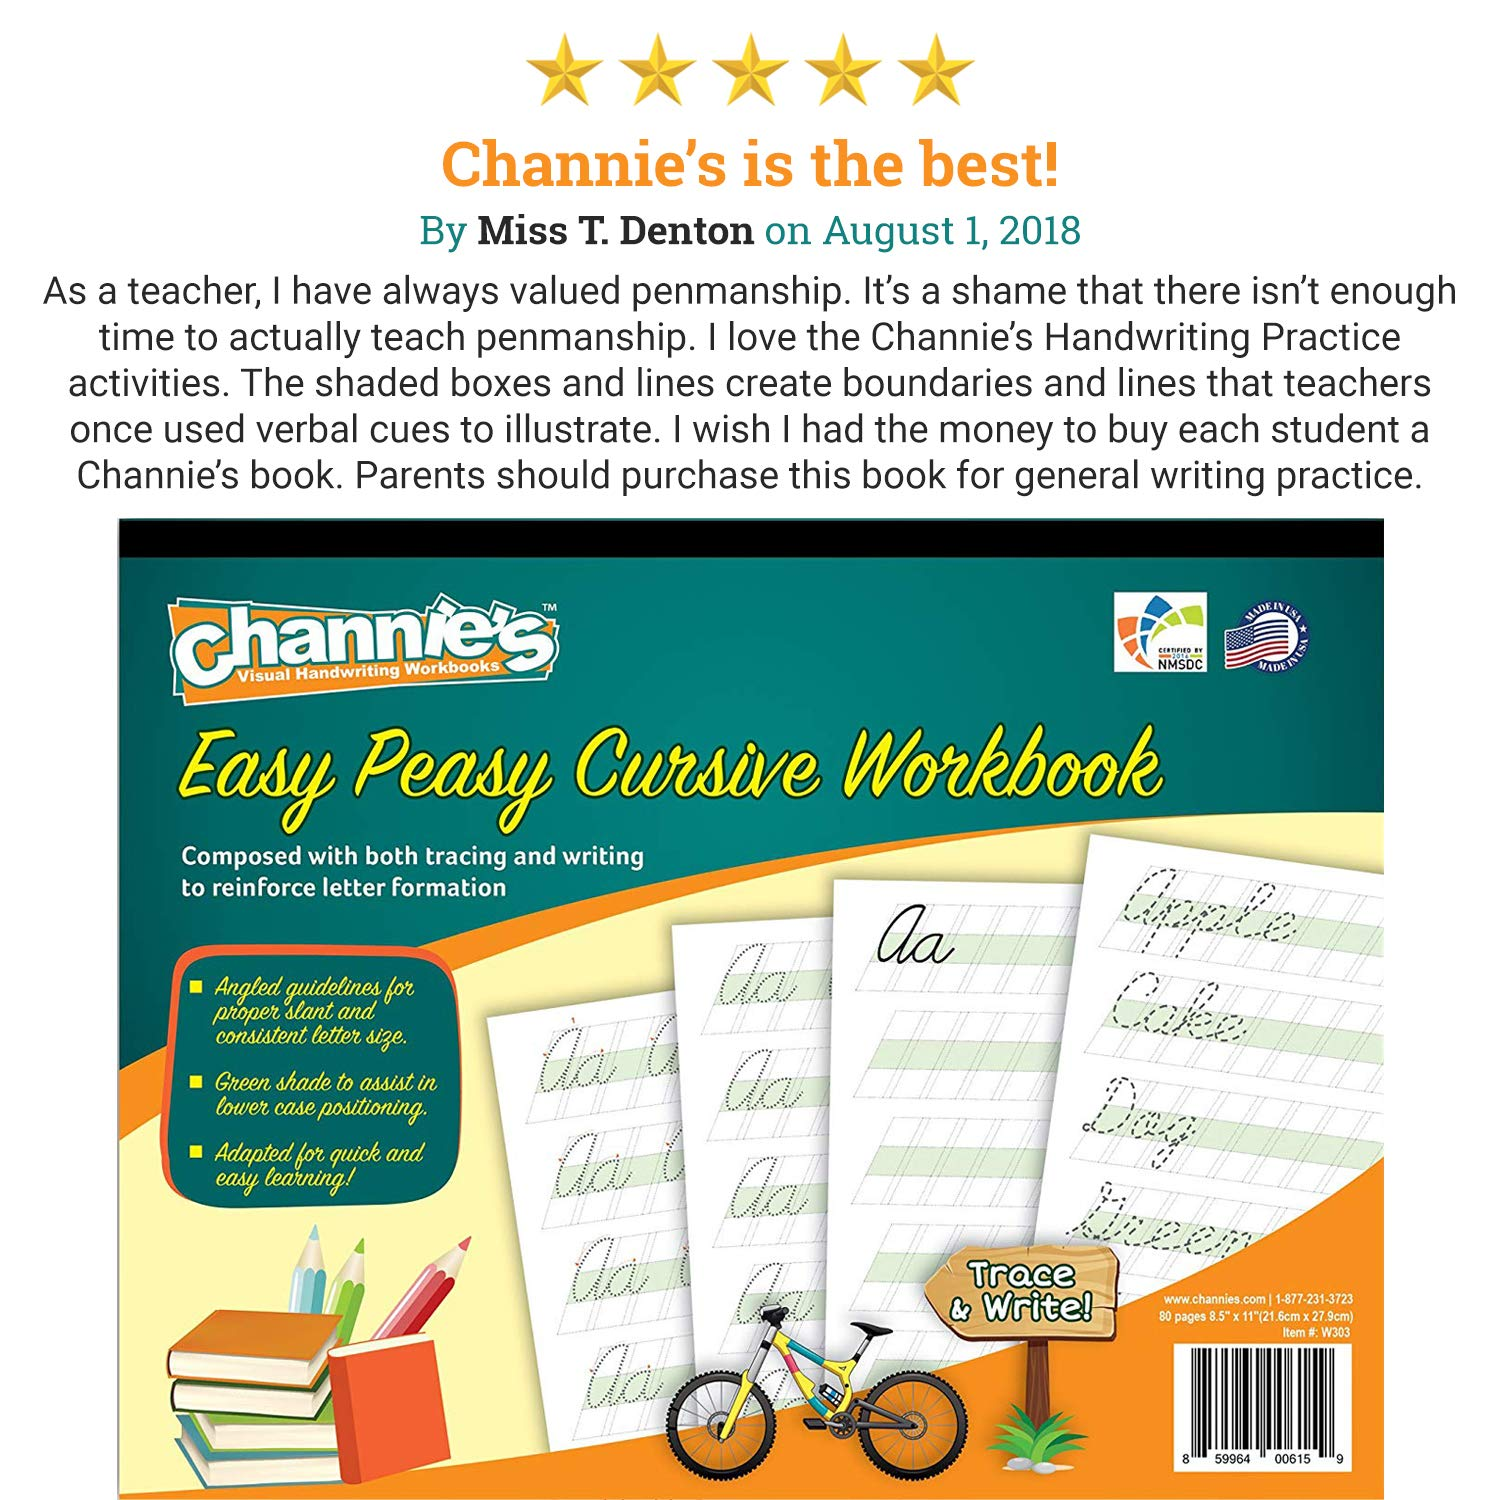 Most Visual Cursive Workbook! Simple & easy  Channie's Easy Peasy Cursive  workbook 80 pages 8 x 11 5 with hardboard back learn Cursive never be